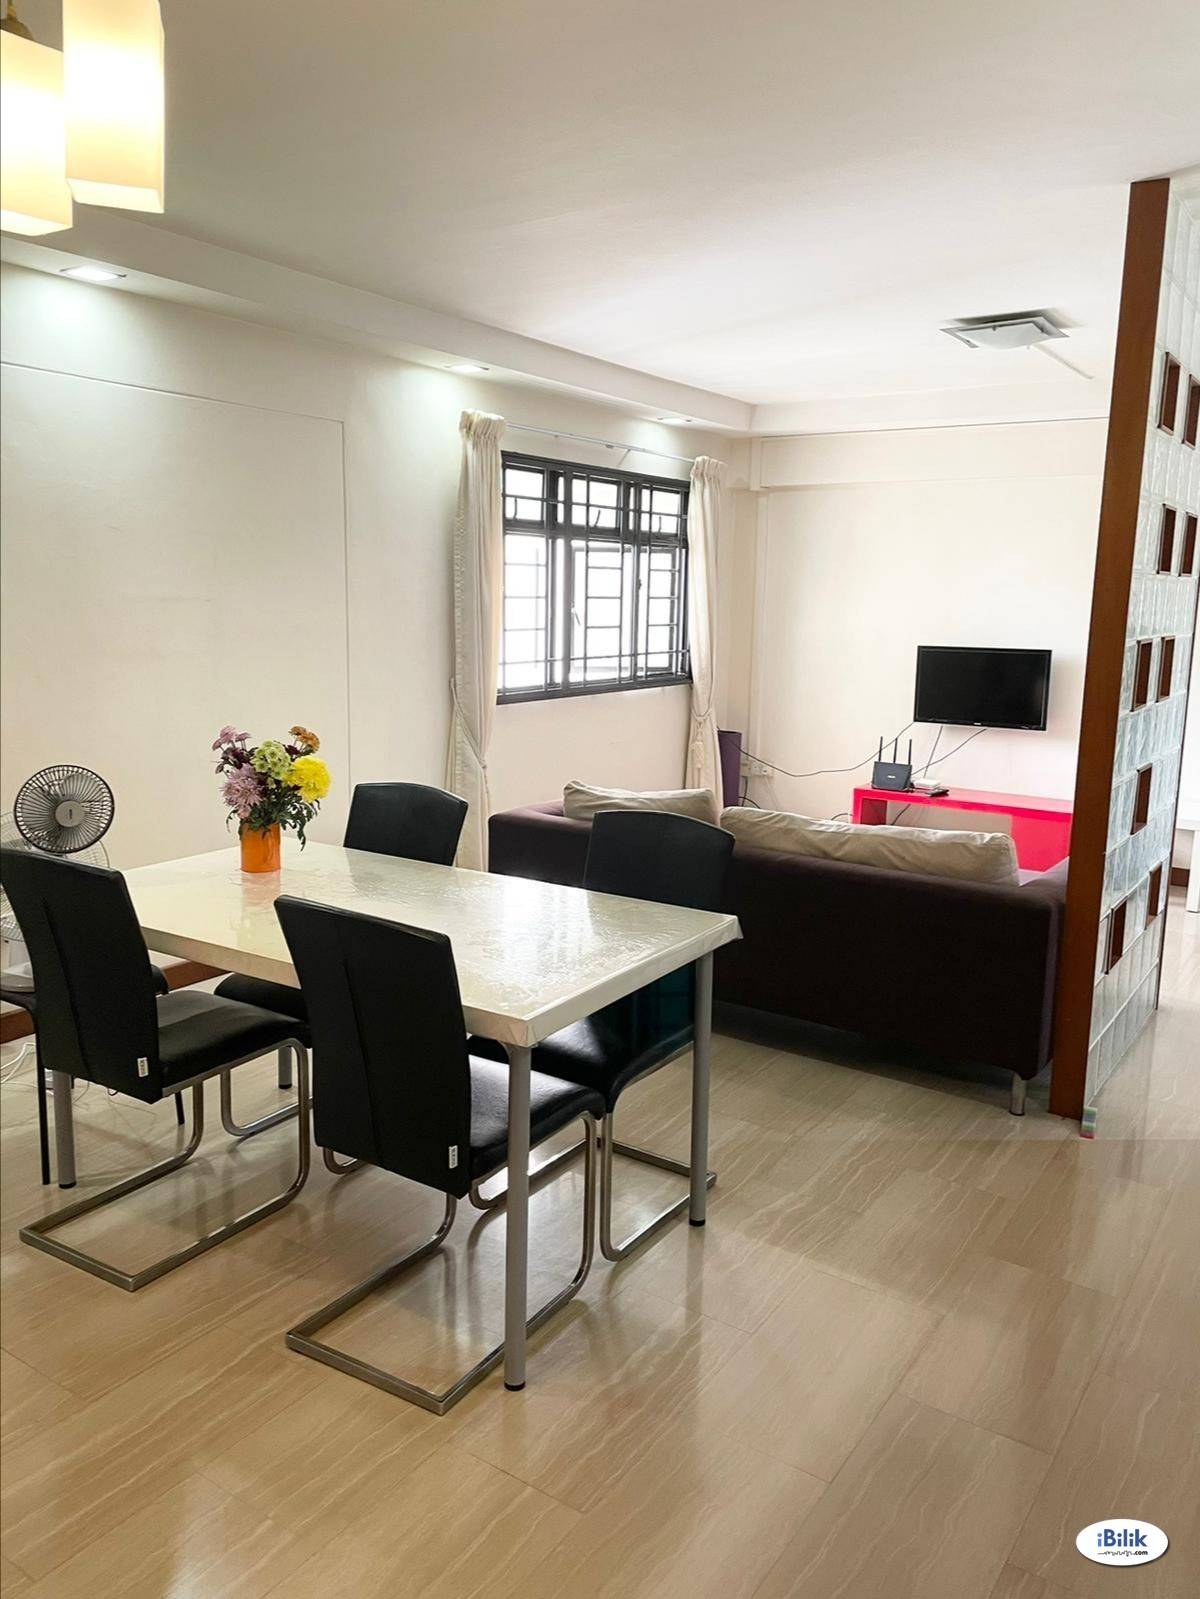 Middle Room at Tiong Bahru, Central Area